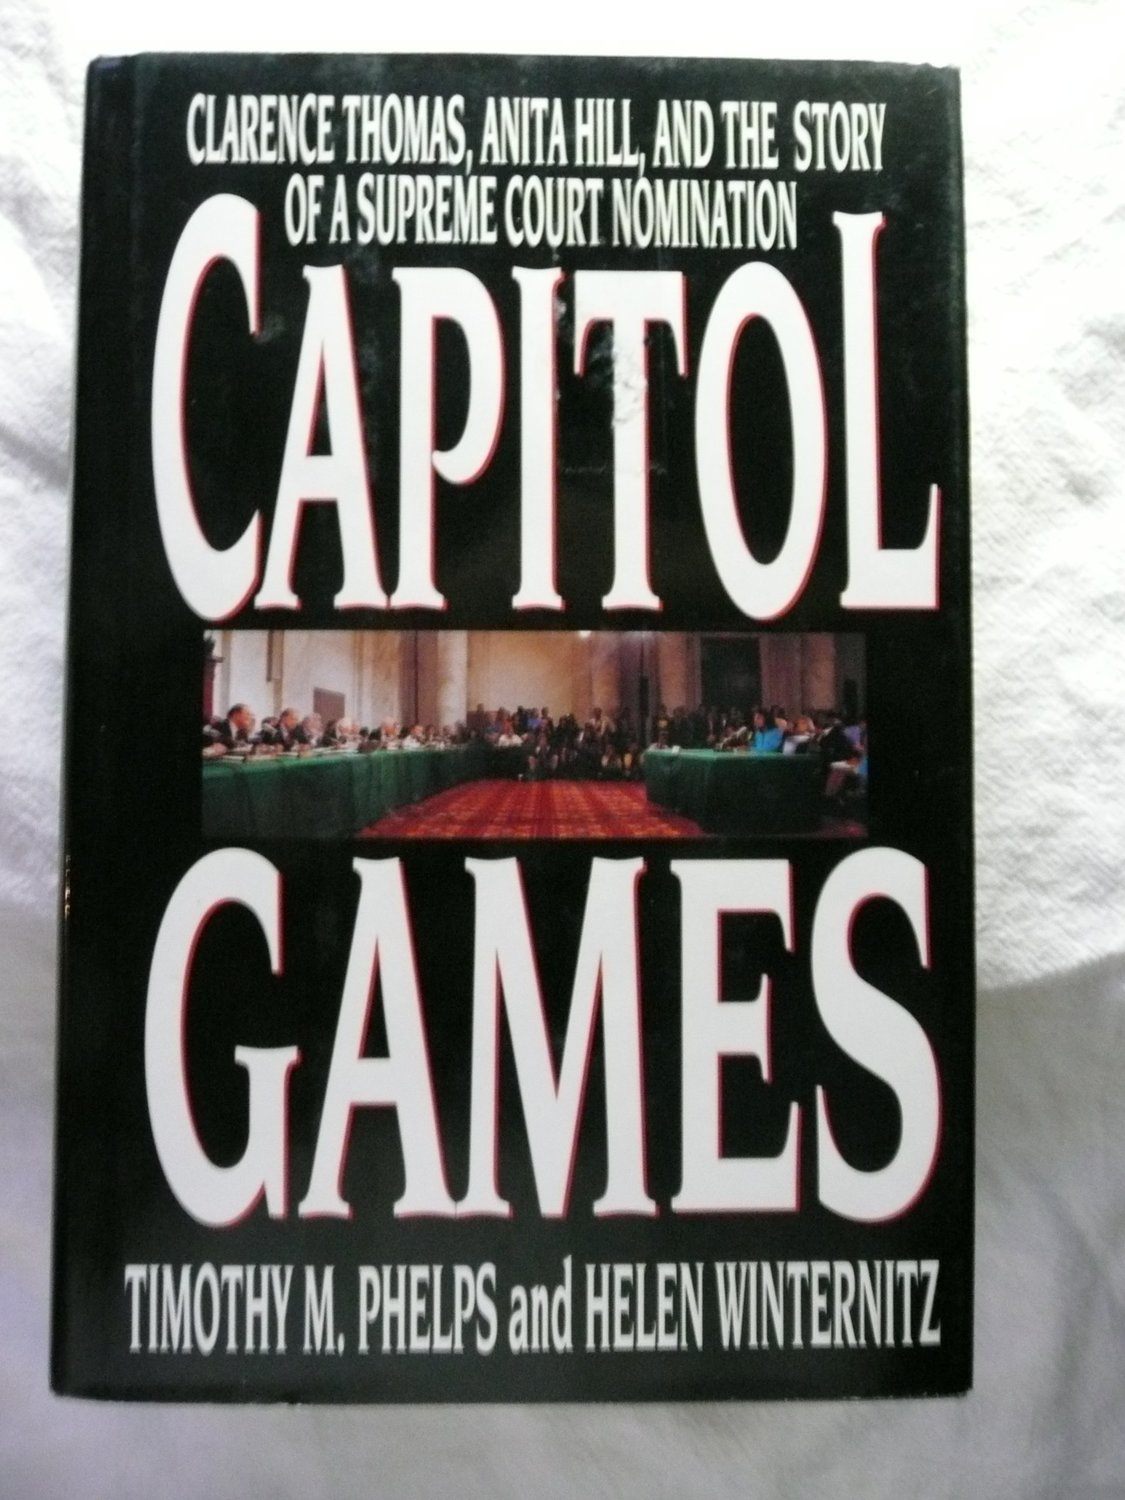 Mr. Phelps co-authored this 1992 book about the Anita Hill story, which was later turned into a docudrama by HBO.